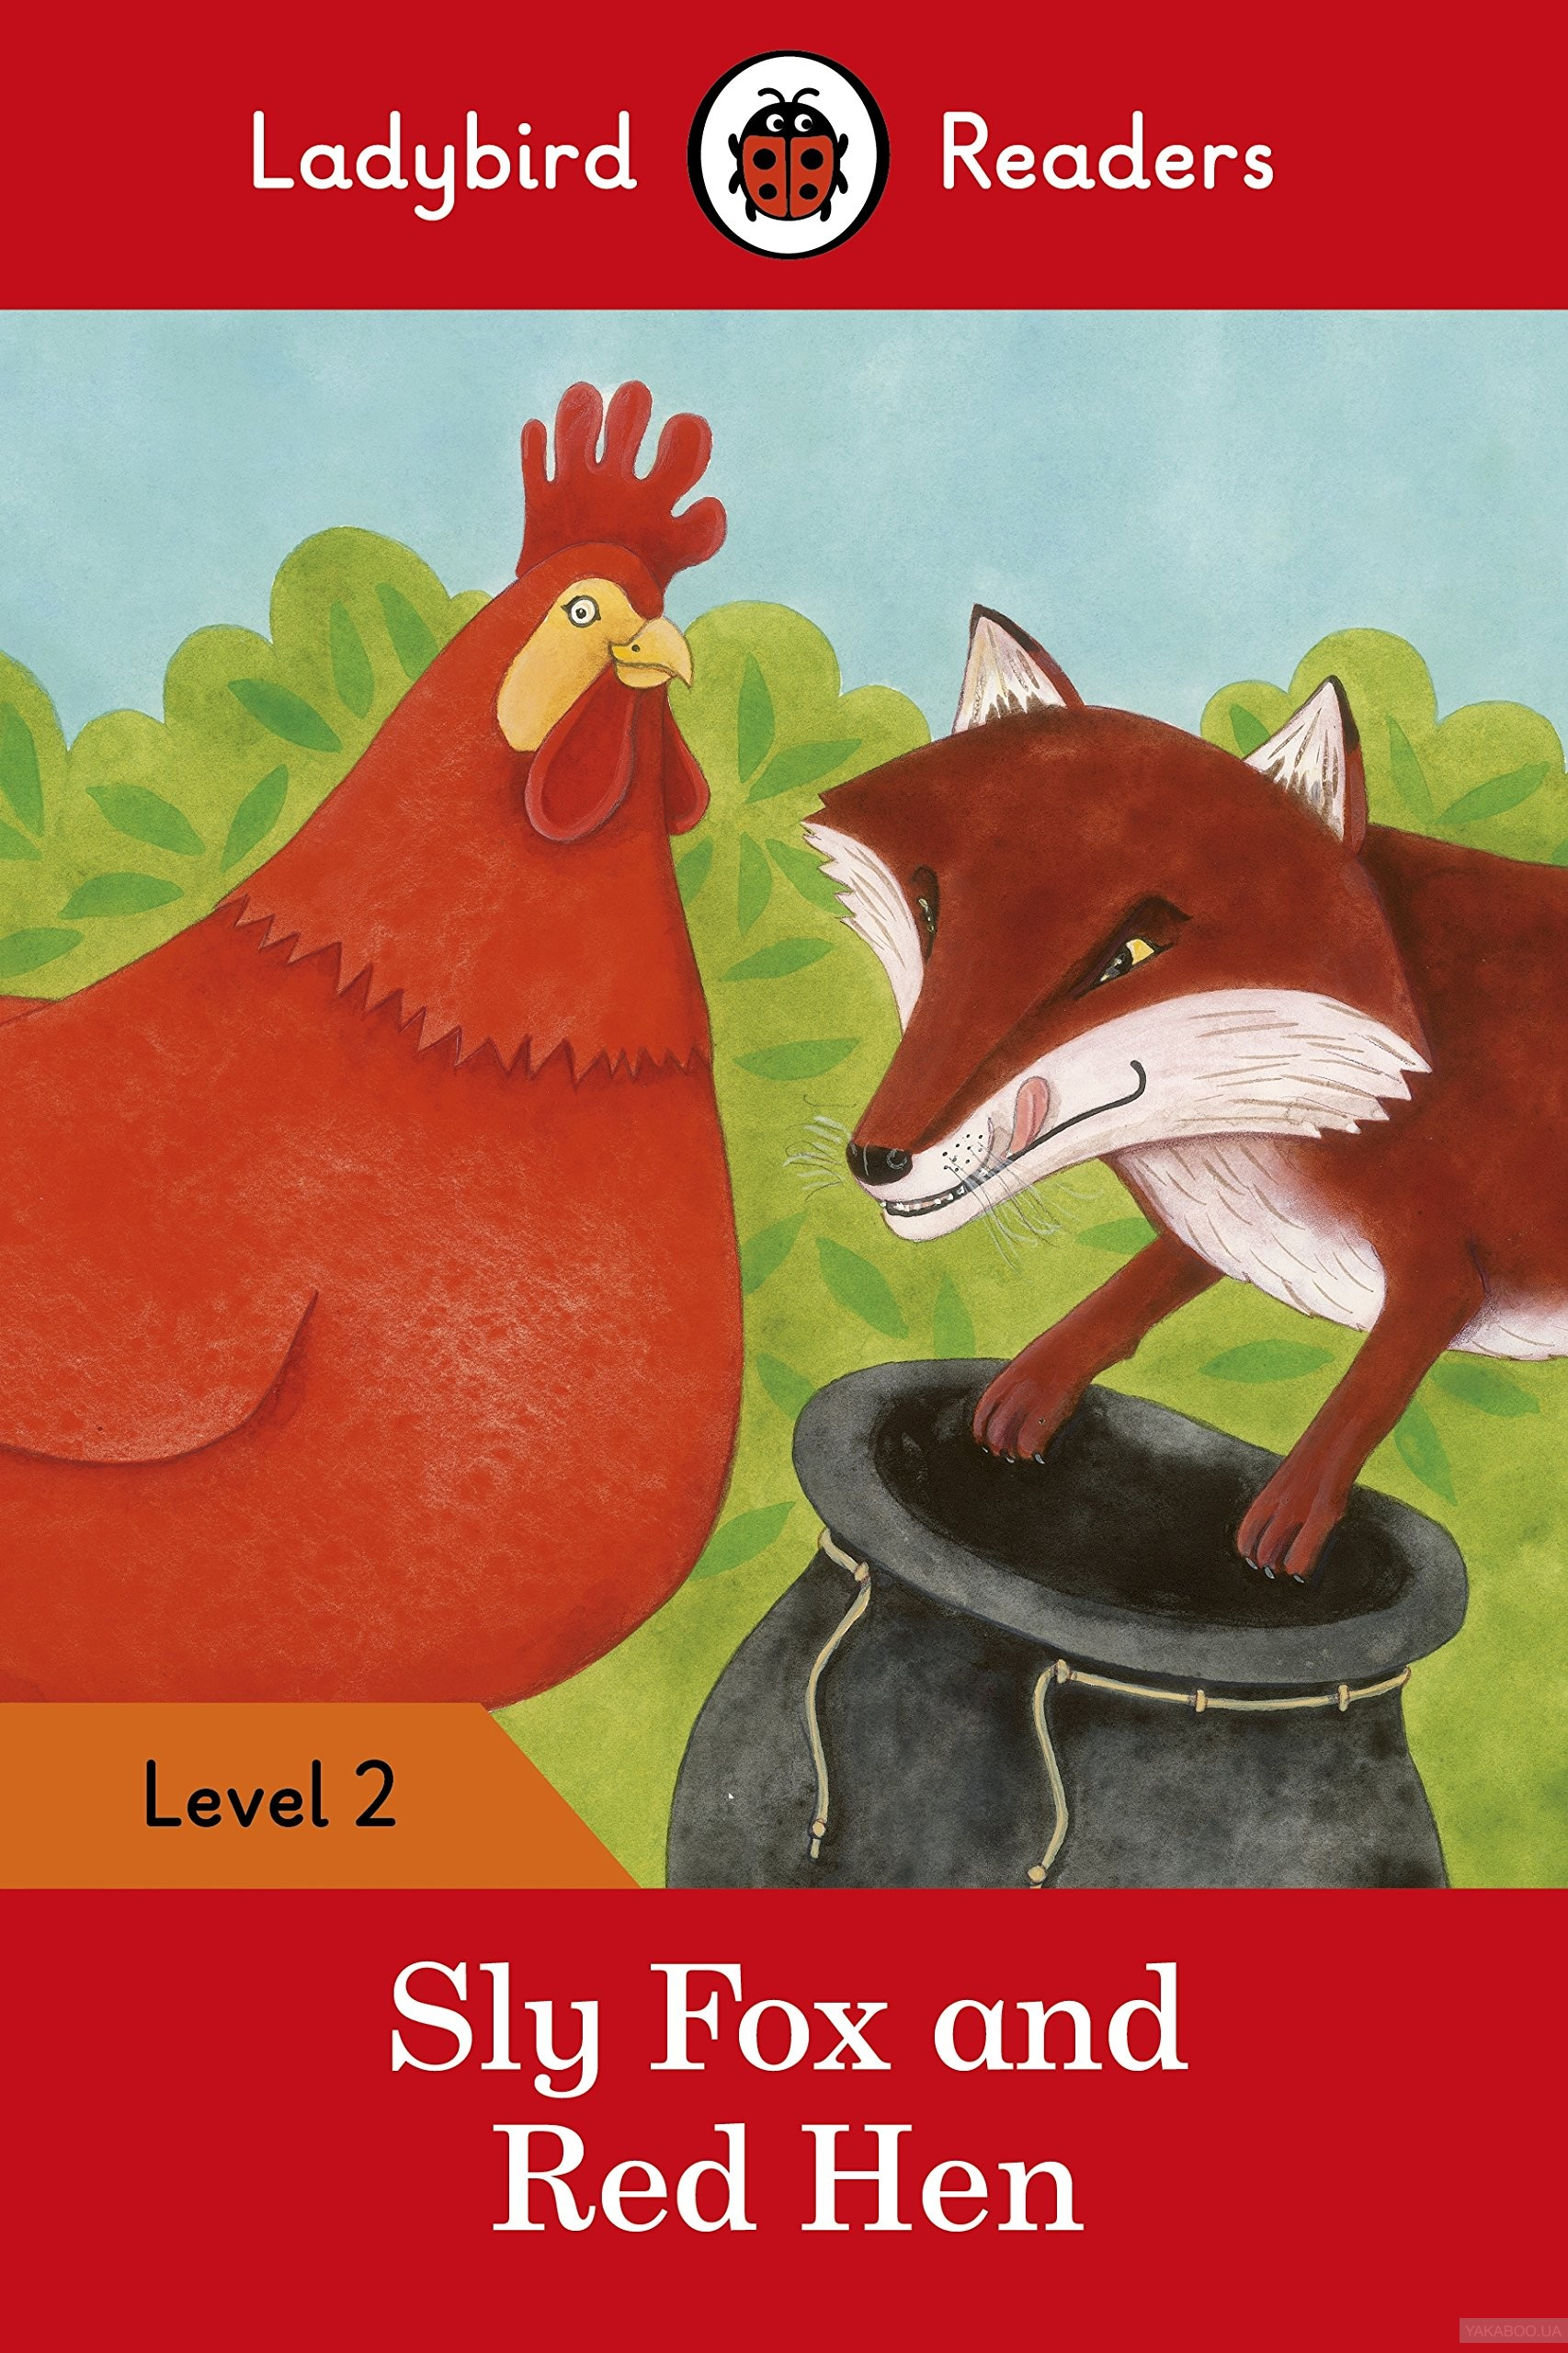 Ladybird Readers. Level 2. Sly Fox and Red Hen